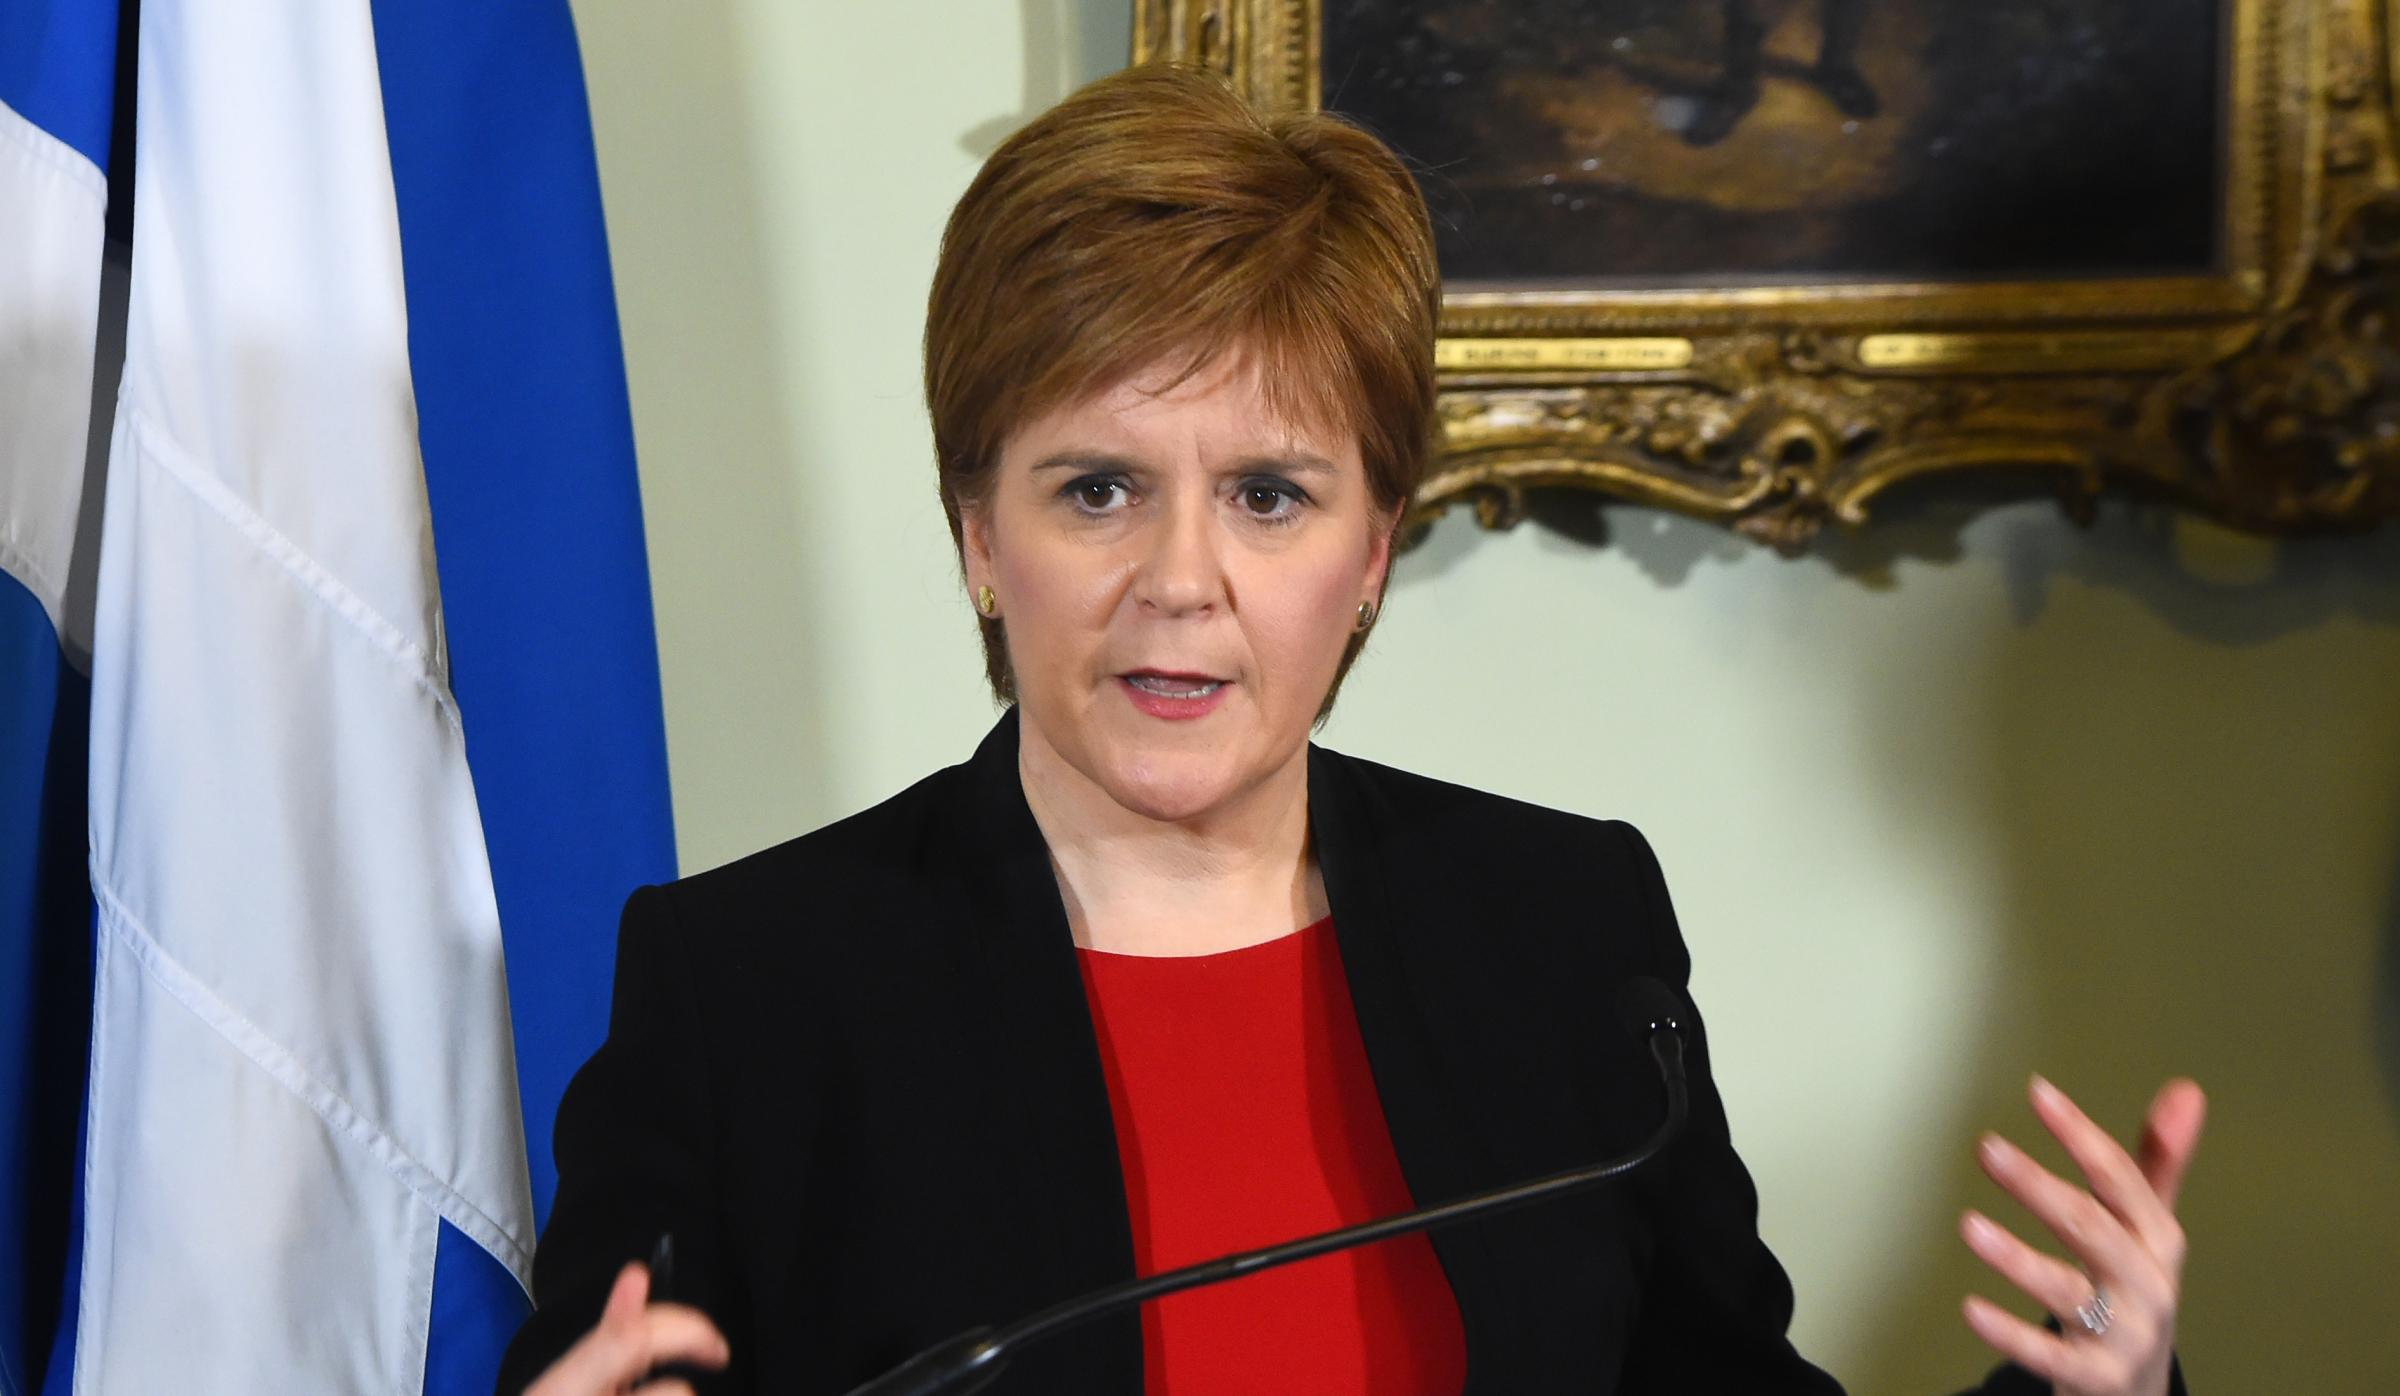 Nicola Sturgeon: It is more important than ever to reassure businesses that Scotland is an open and welcoming country